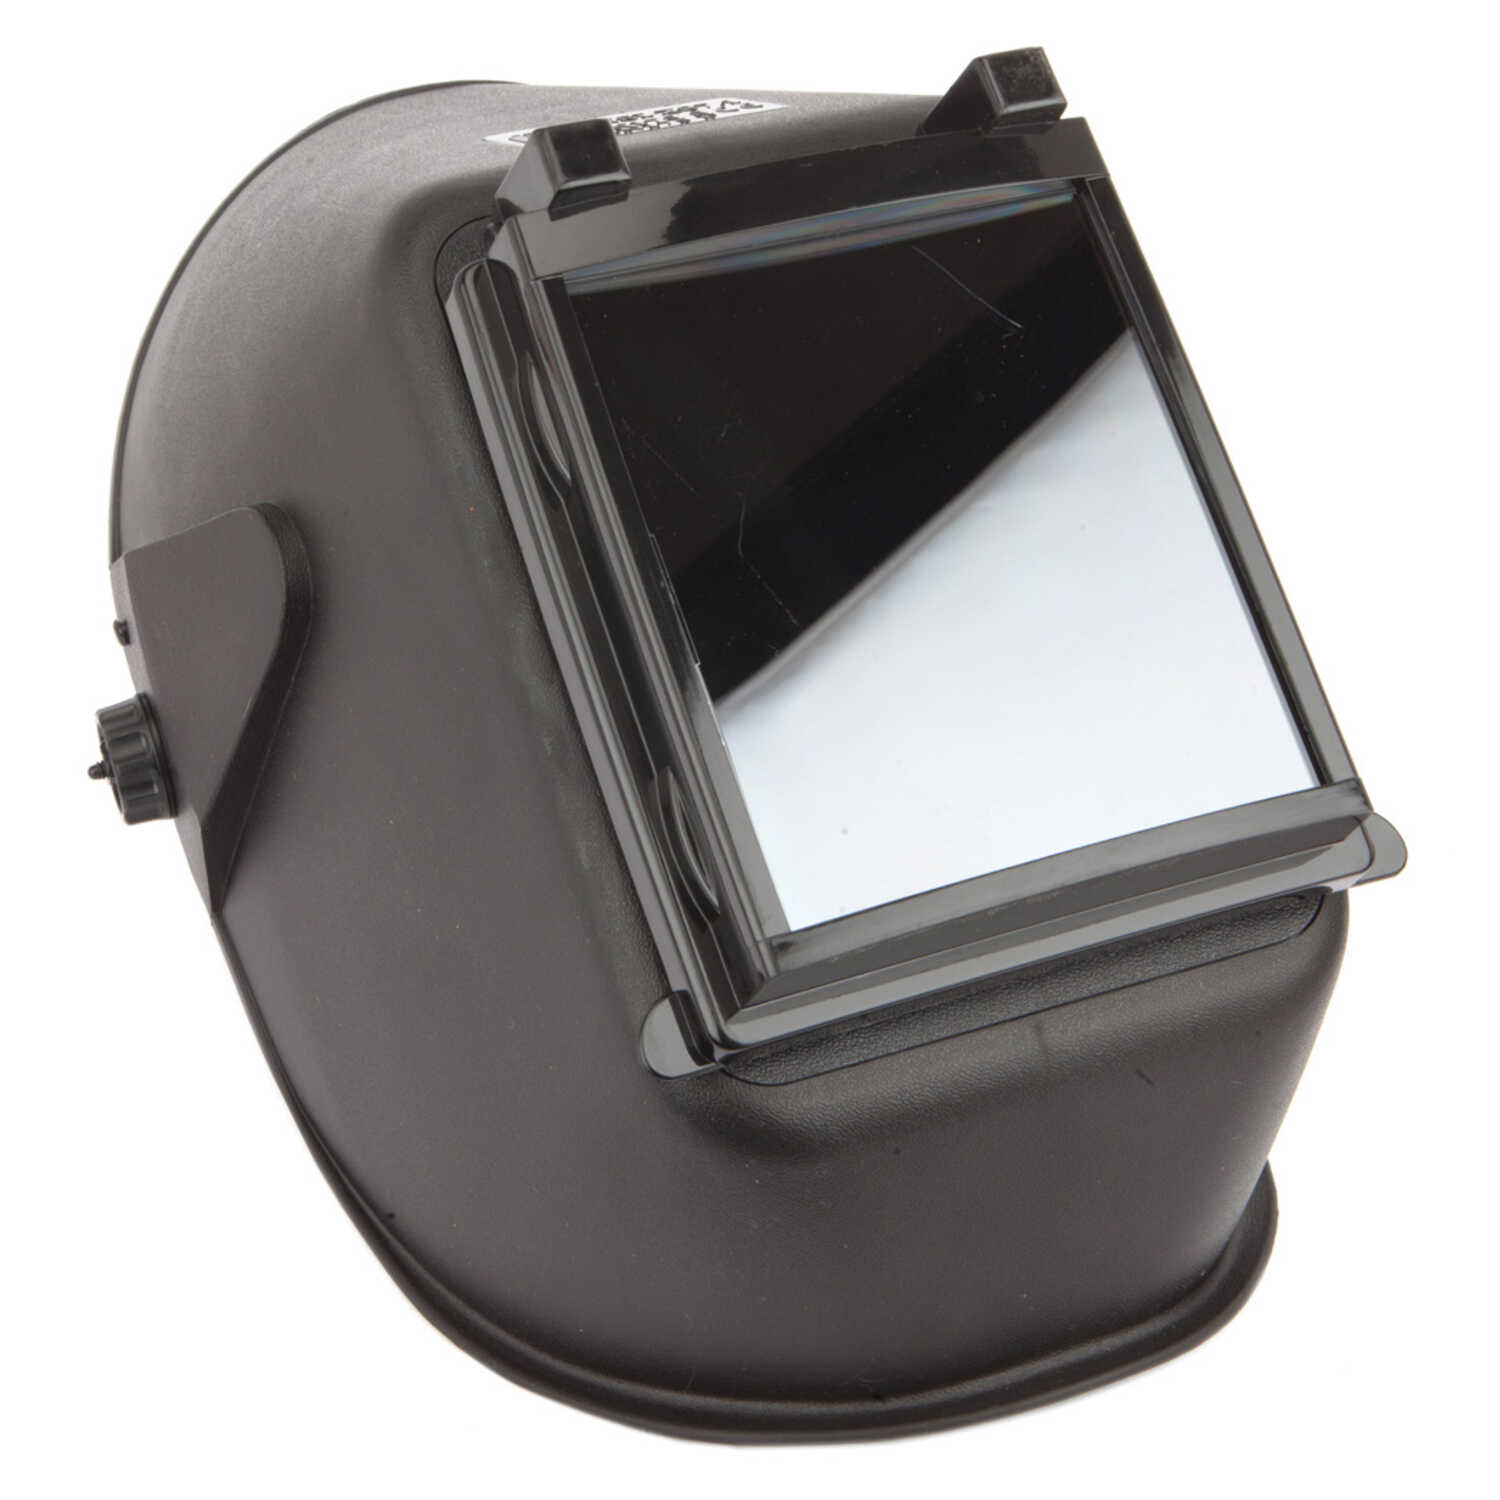 Forney  Bandit III  5.25 in. H x 4.5 in. W Fixed Shade  Welding Helmet  10 Shade Number 1.43 lb. Bla